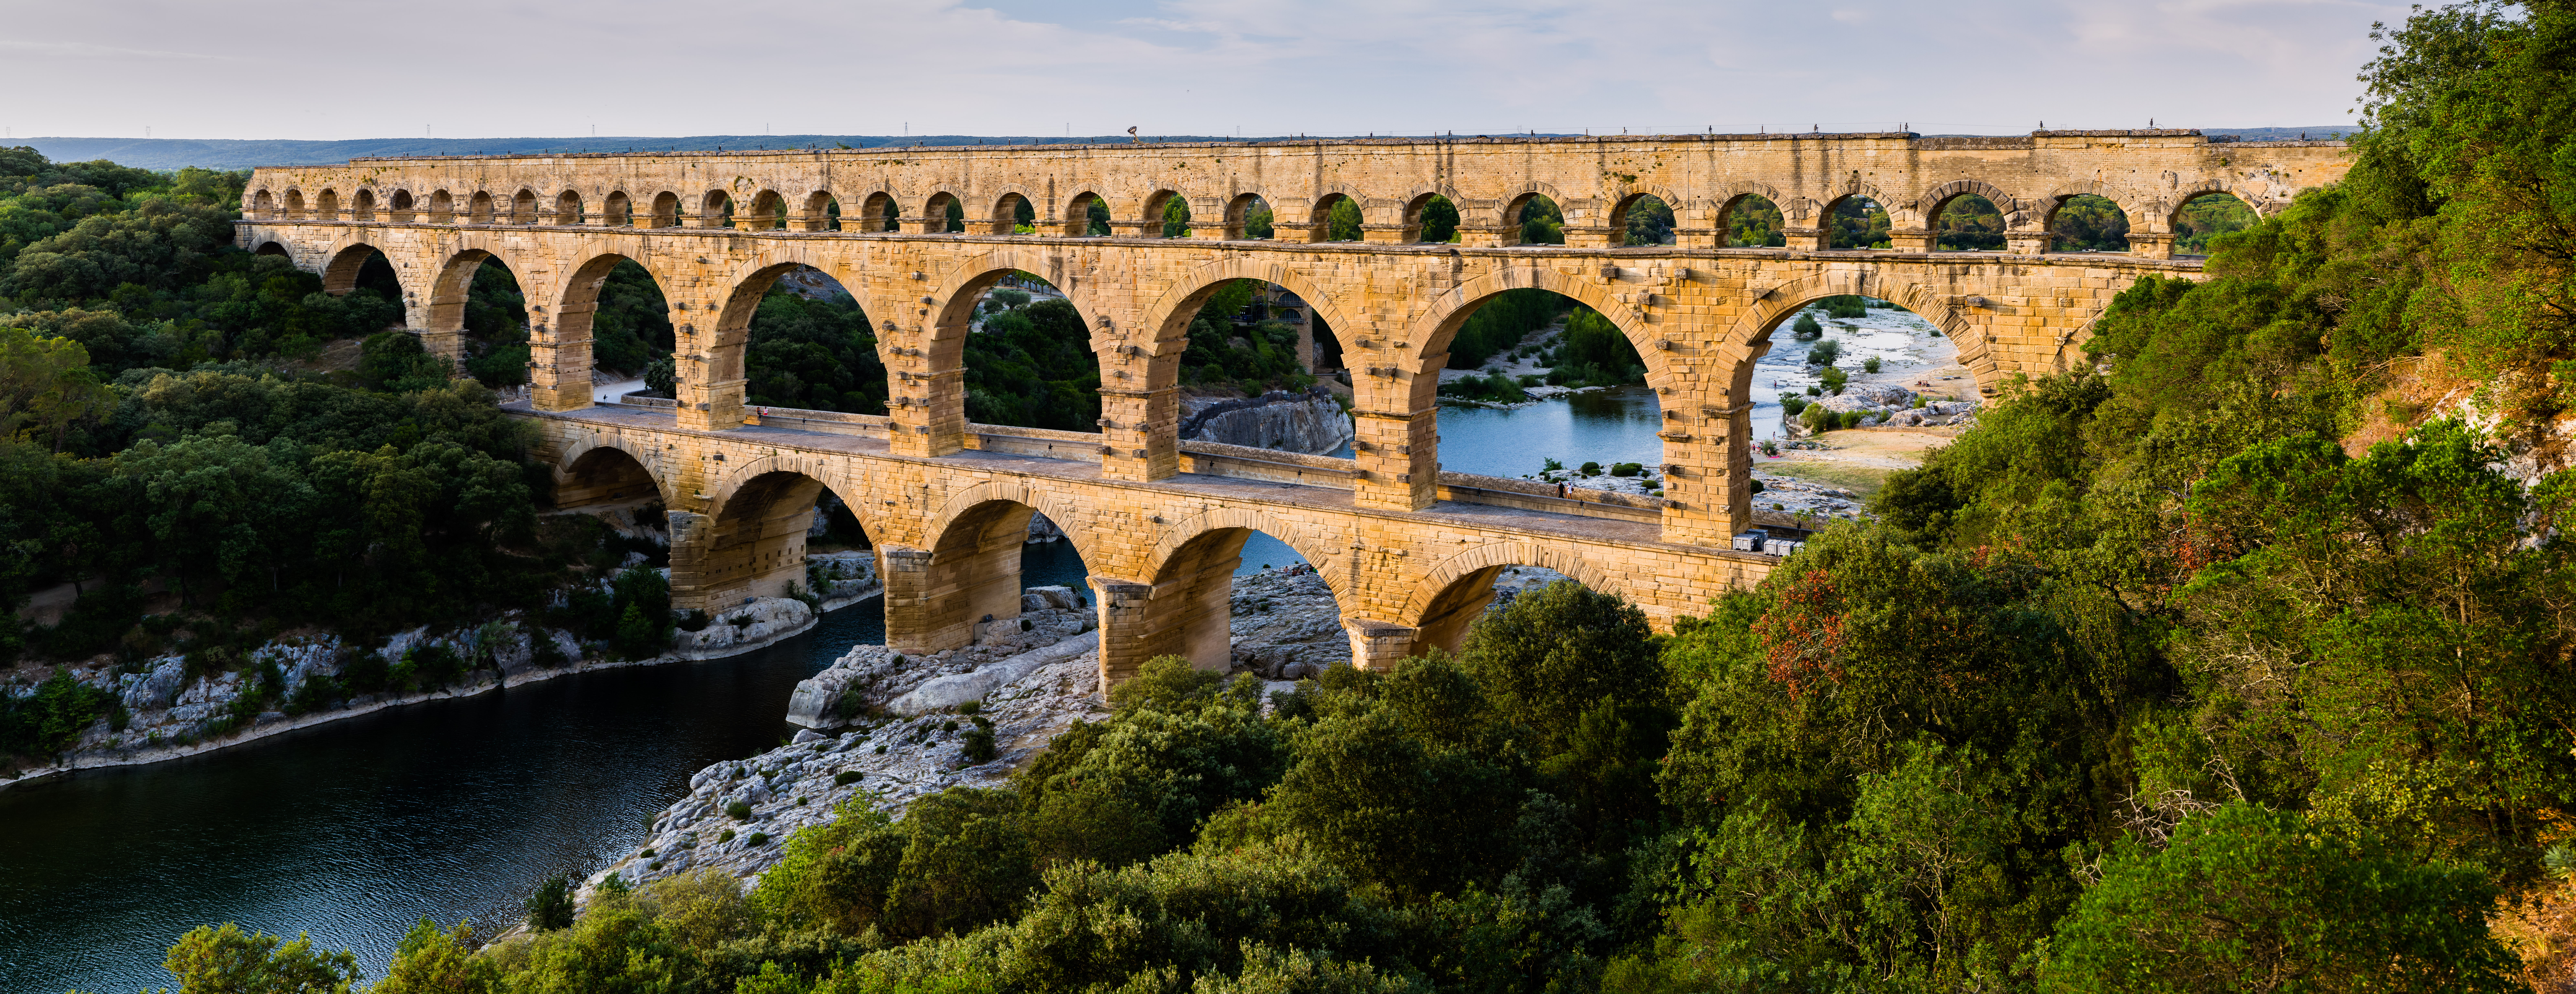 Pont du Gard — a ~2000 years old Roman aqueduct in Southern France [12648x4482]